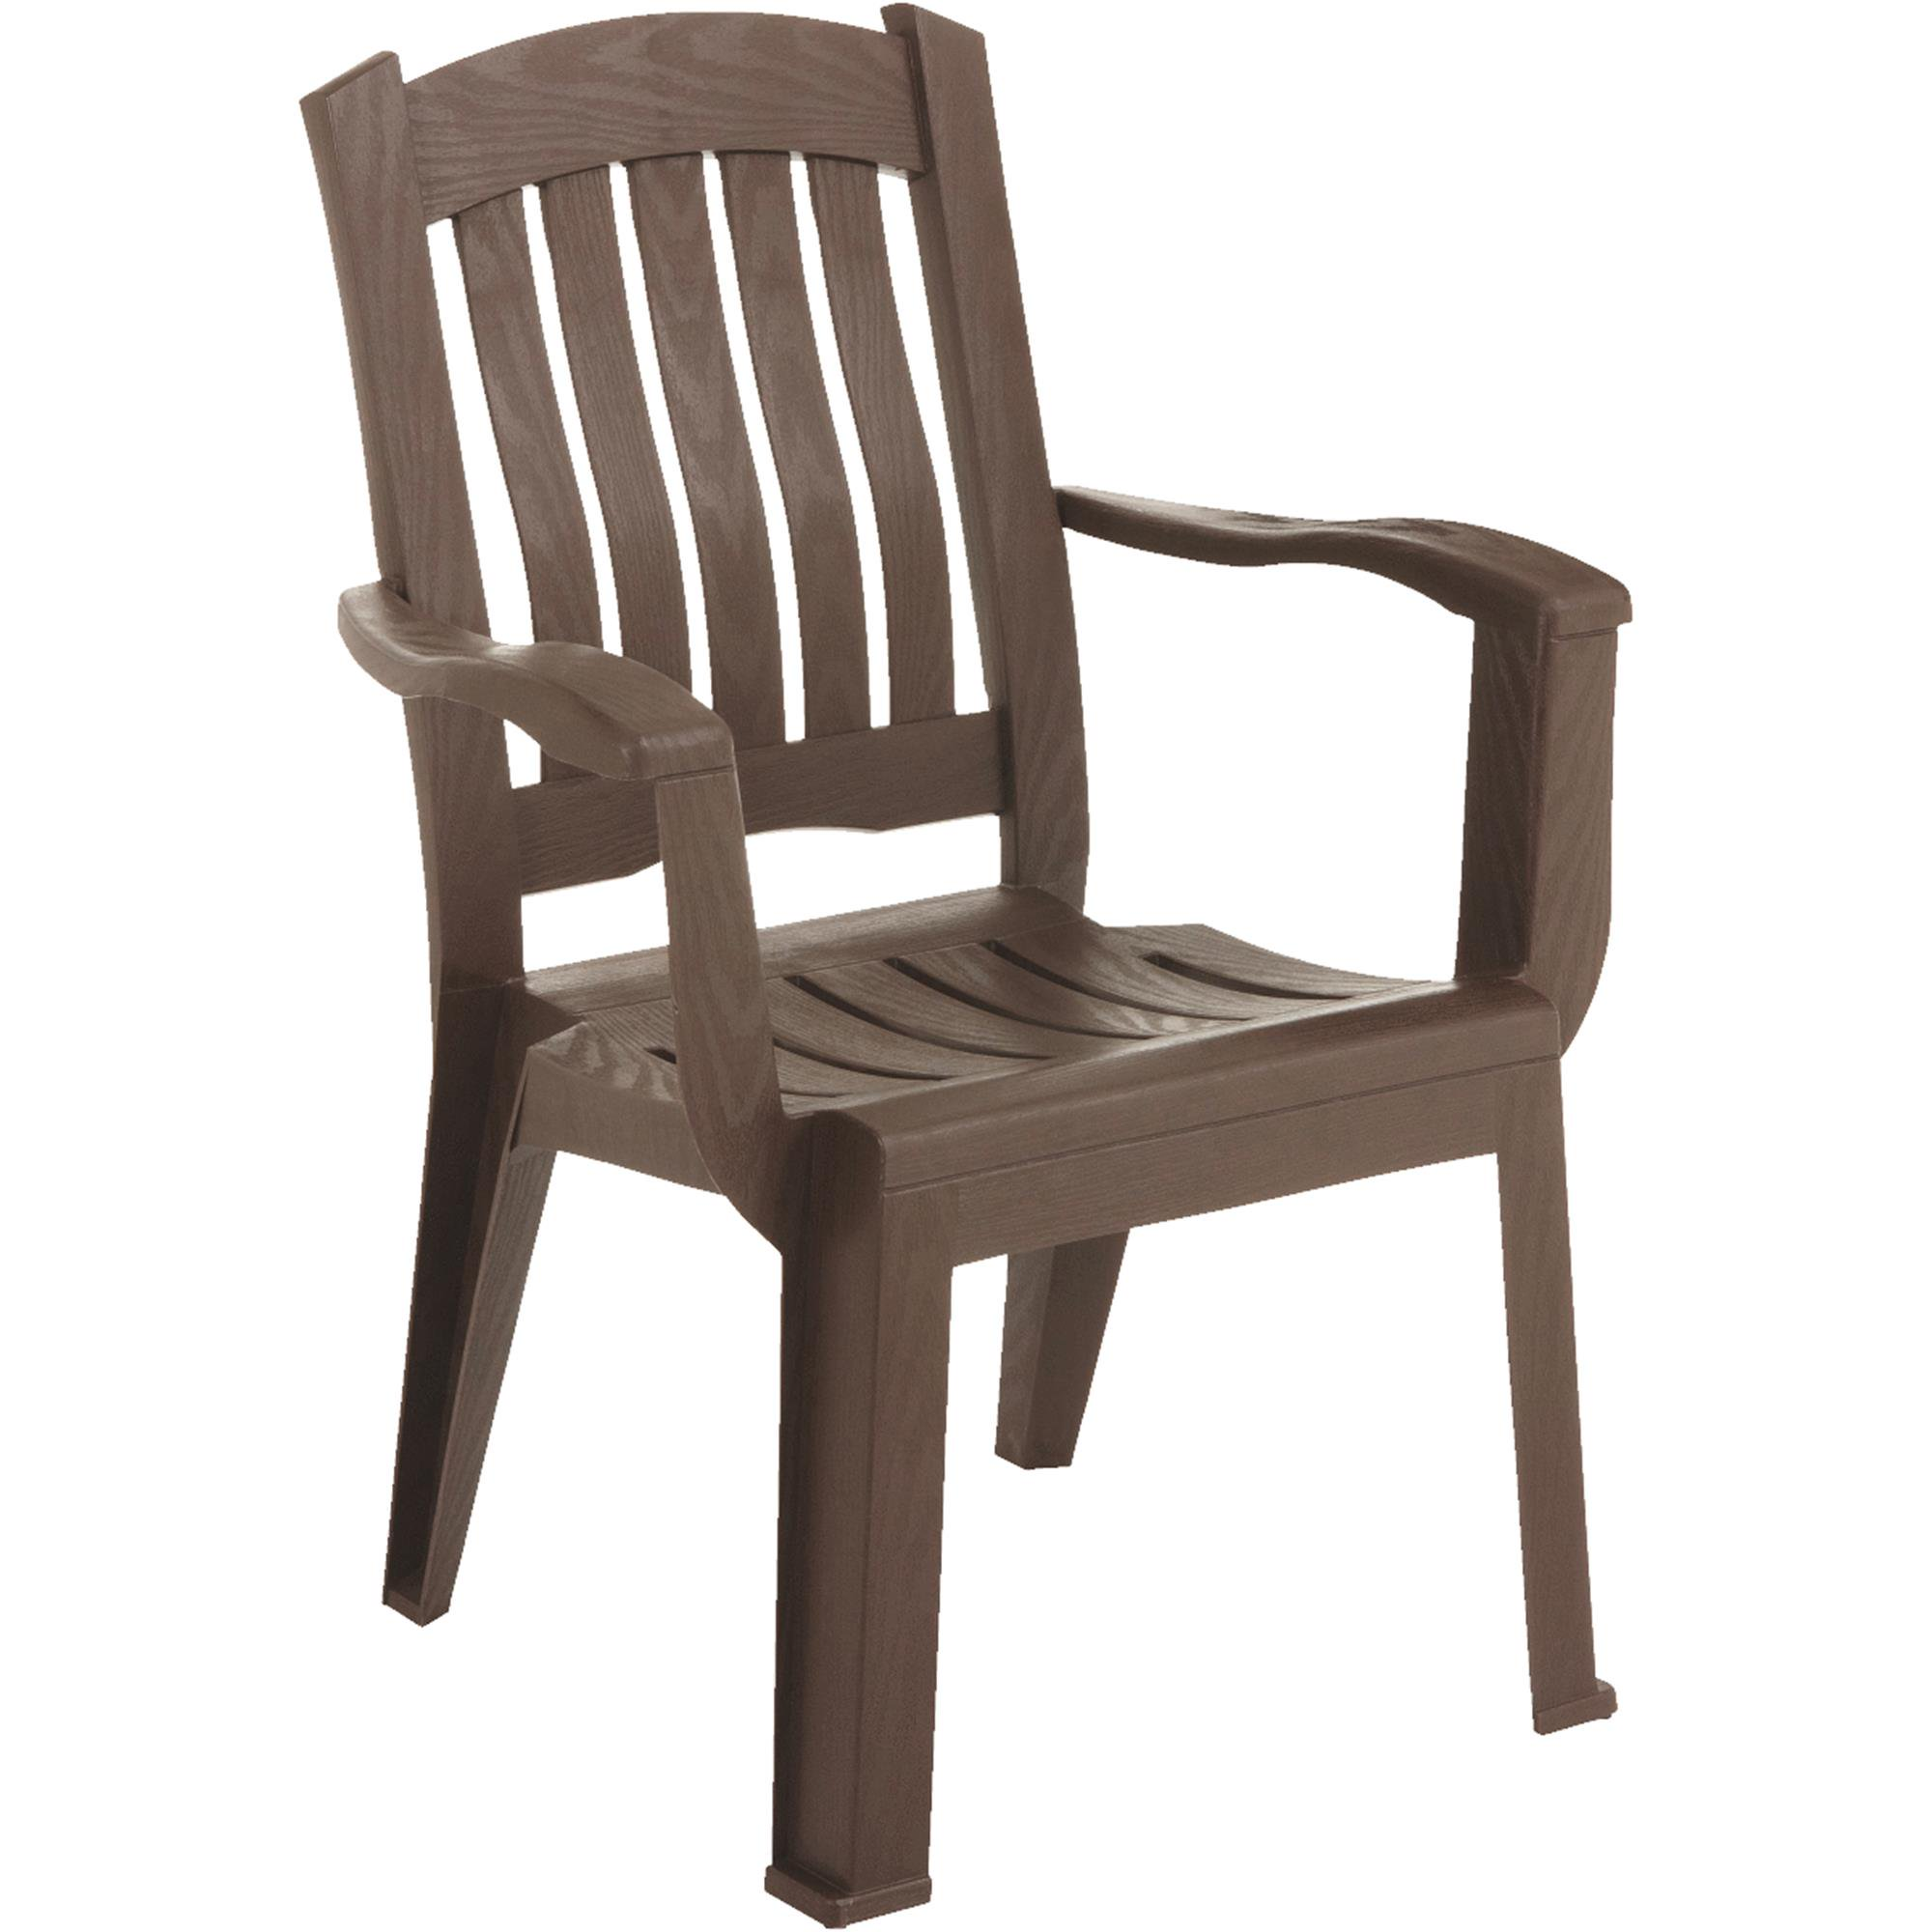 Image of Adams Brentwood Chair